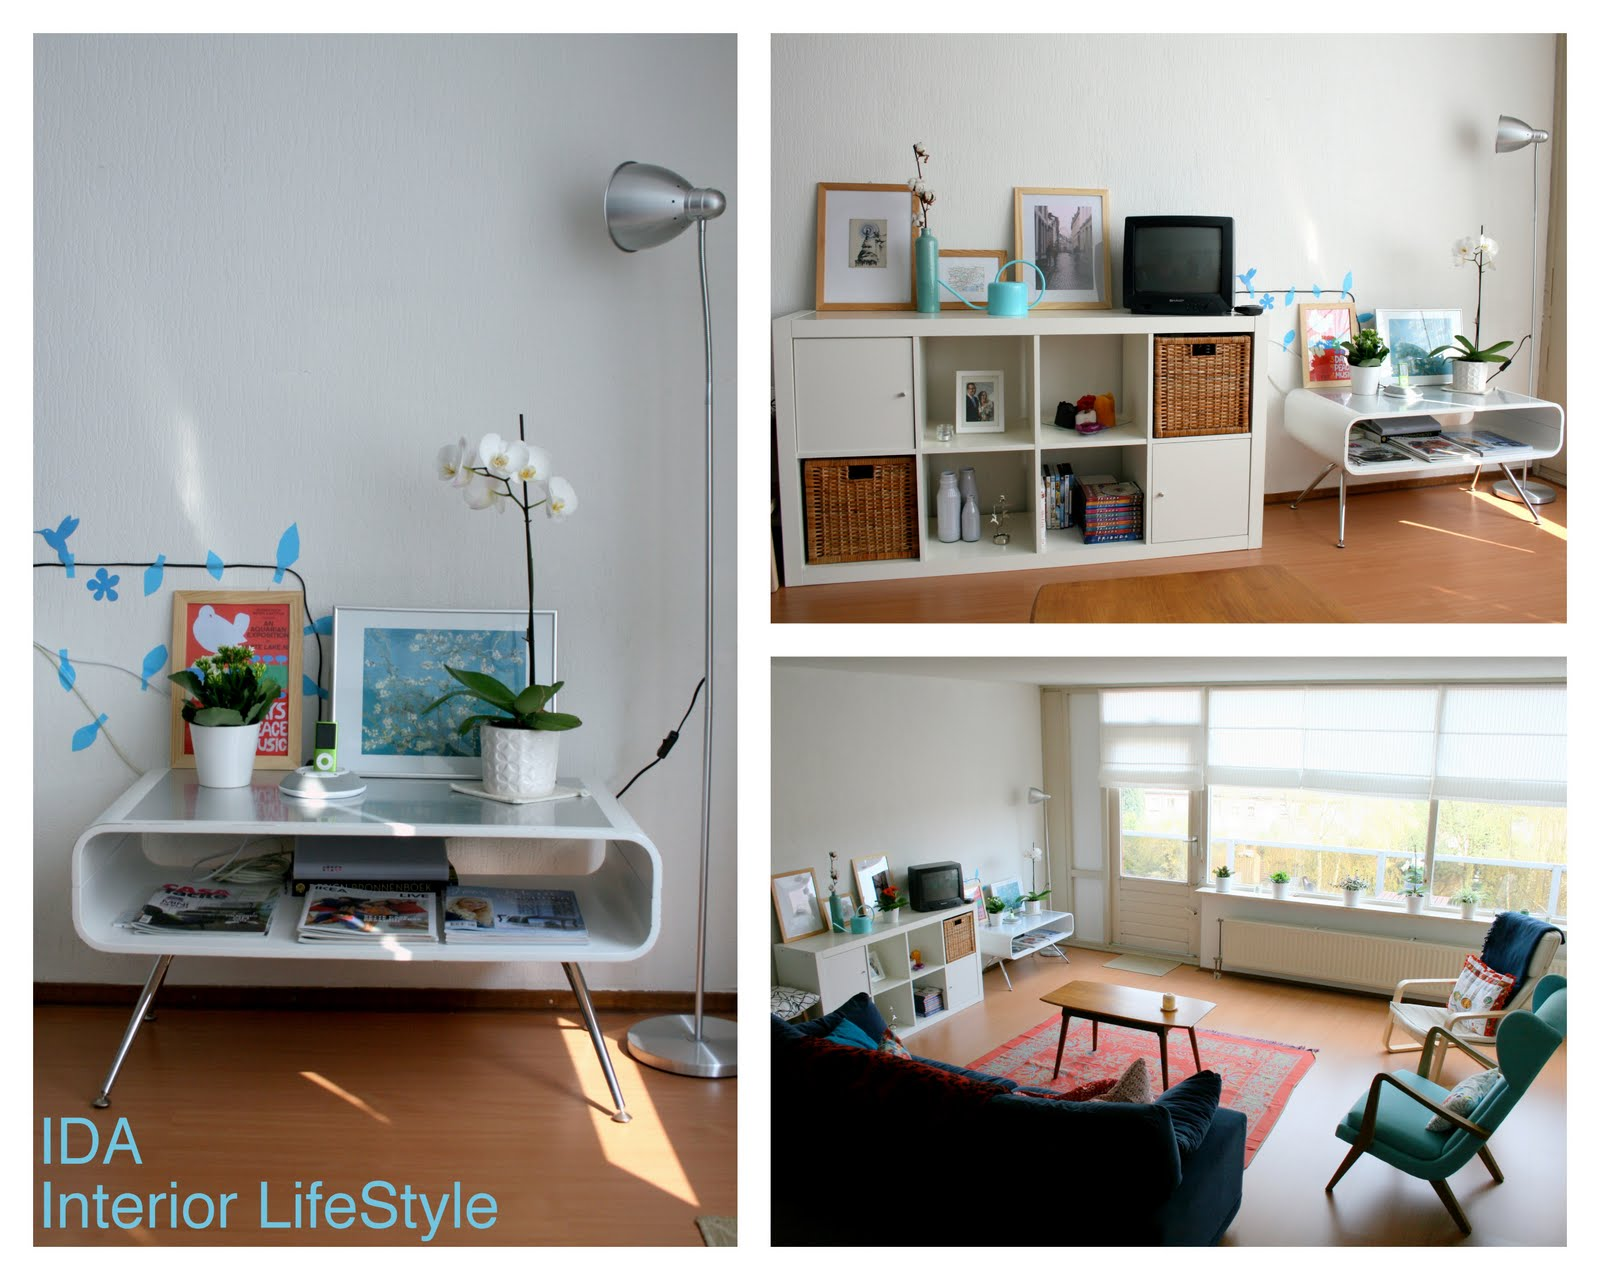 Ida interior lifestyle: while you are at it!